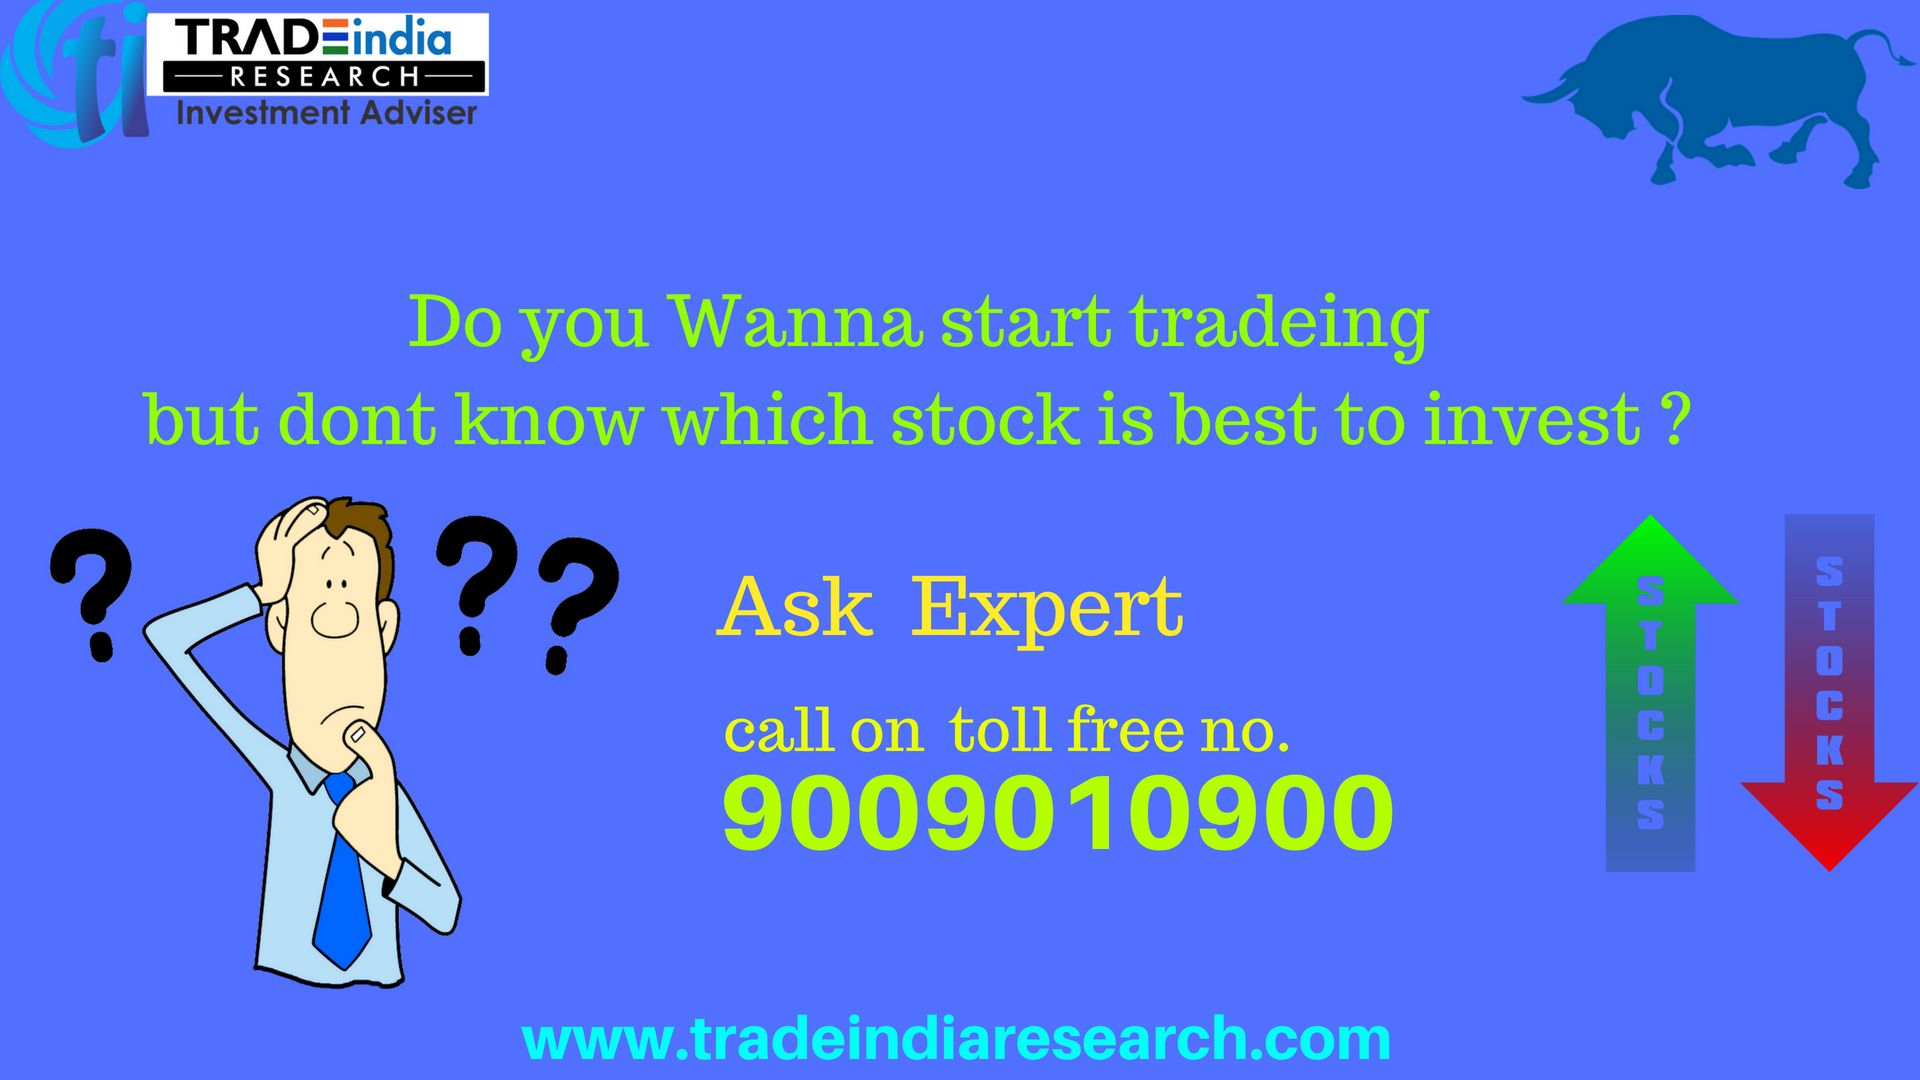 Stockmarket Equitytips Commoditymarket Freetips Mcxtips Stock Btsttips Basemetal Do You Wanna Start Trading But Dont Know Which Stock Investment Advisor